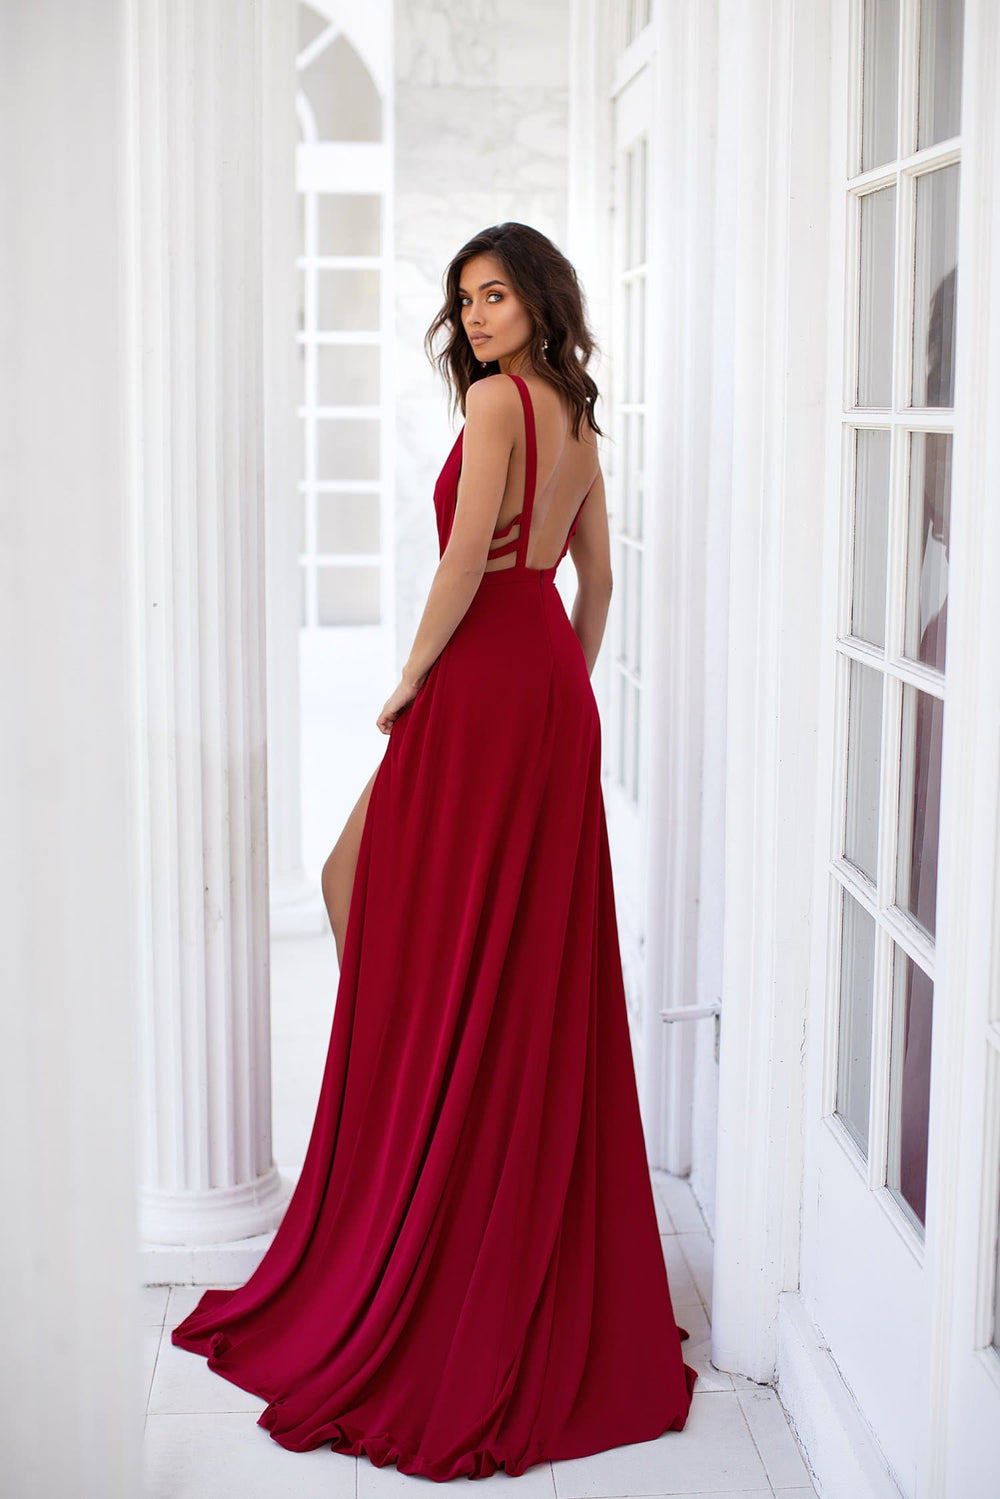 Maritza - Red Jersey Gown with Plunge Neck Detailing & Two Slits